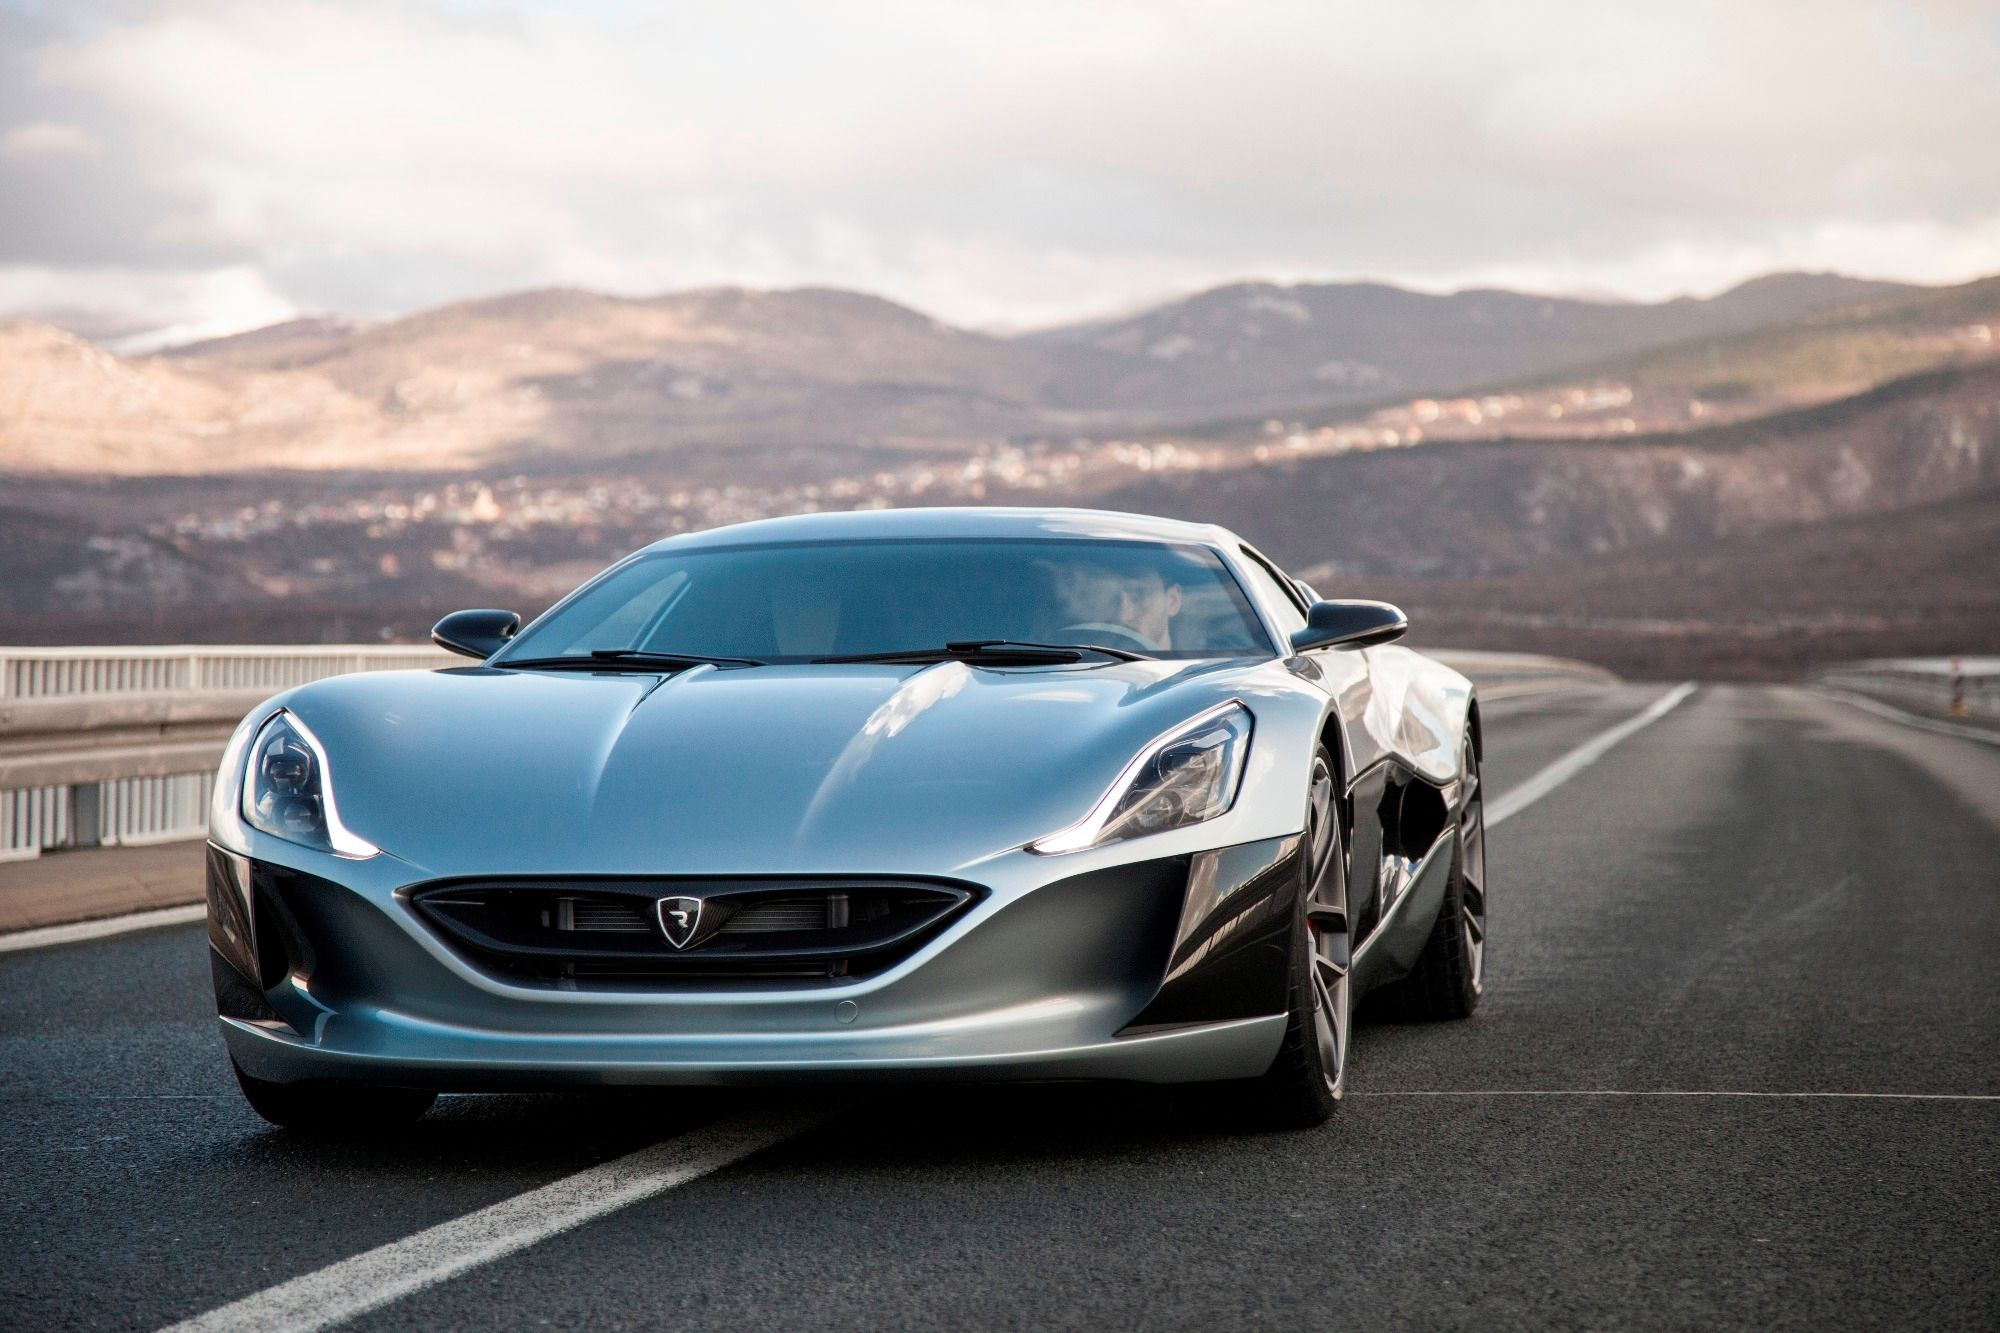 Rimac C Two Is A Gonzo 1 914 Horsepower Electric Hypercar Super Cars Best Luxury Sports Car Sports Cars Luxury